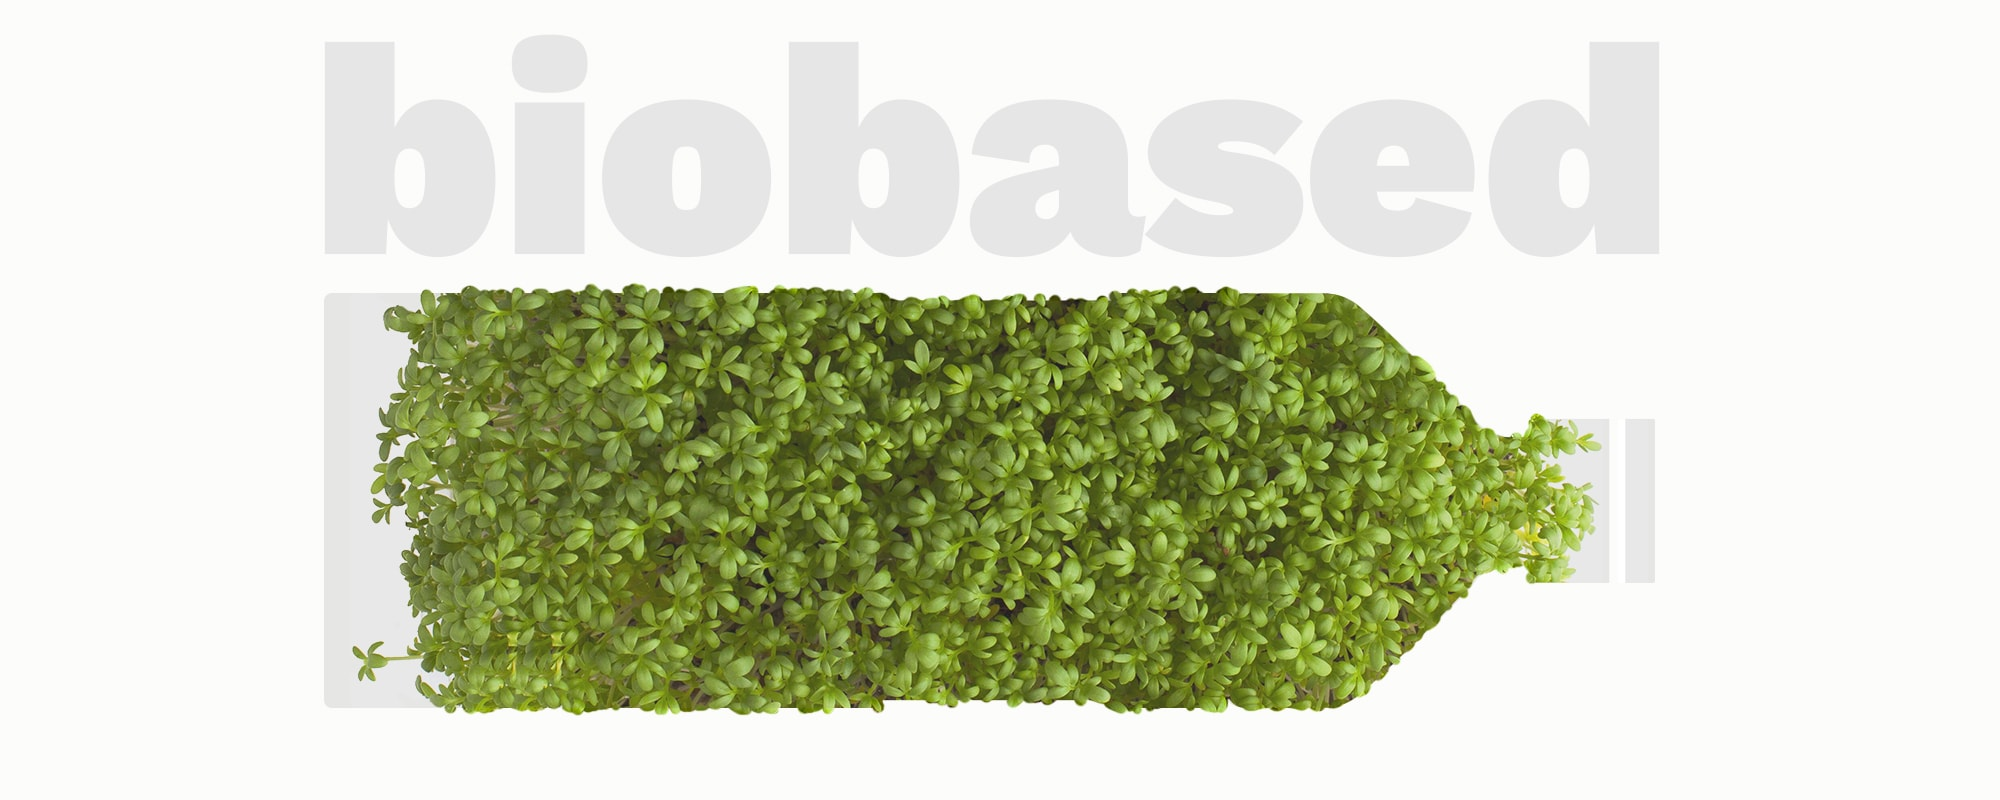 Biodegradable bioplastics: are they also biobased?